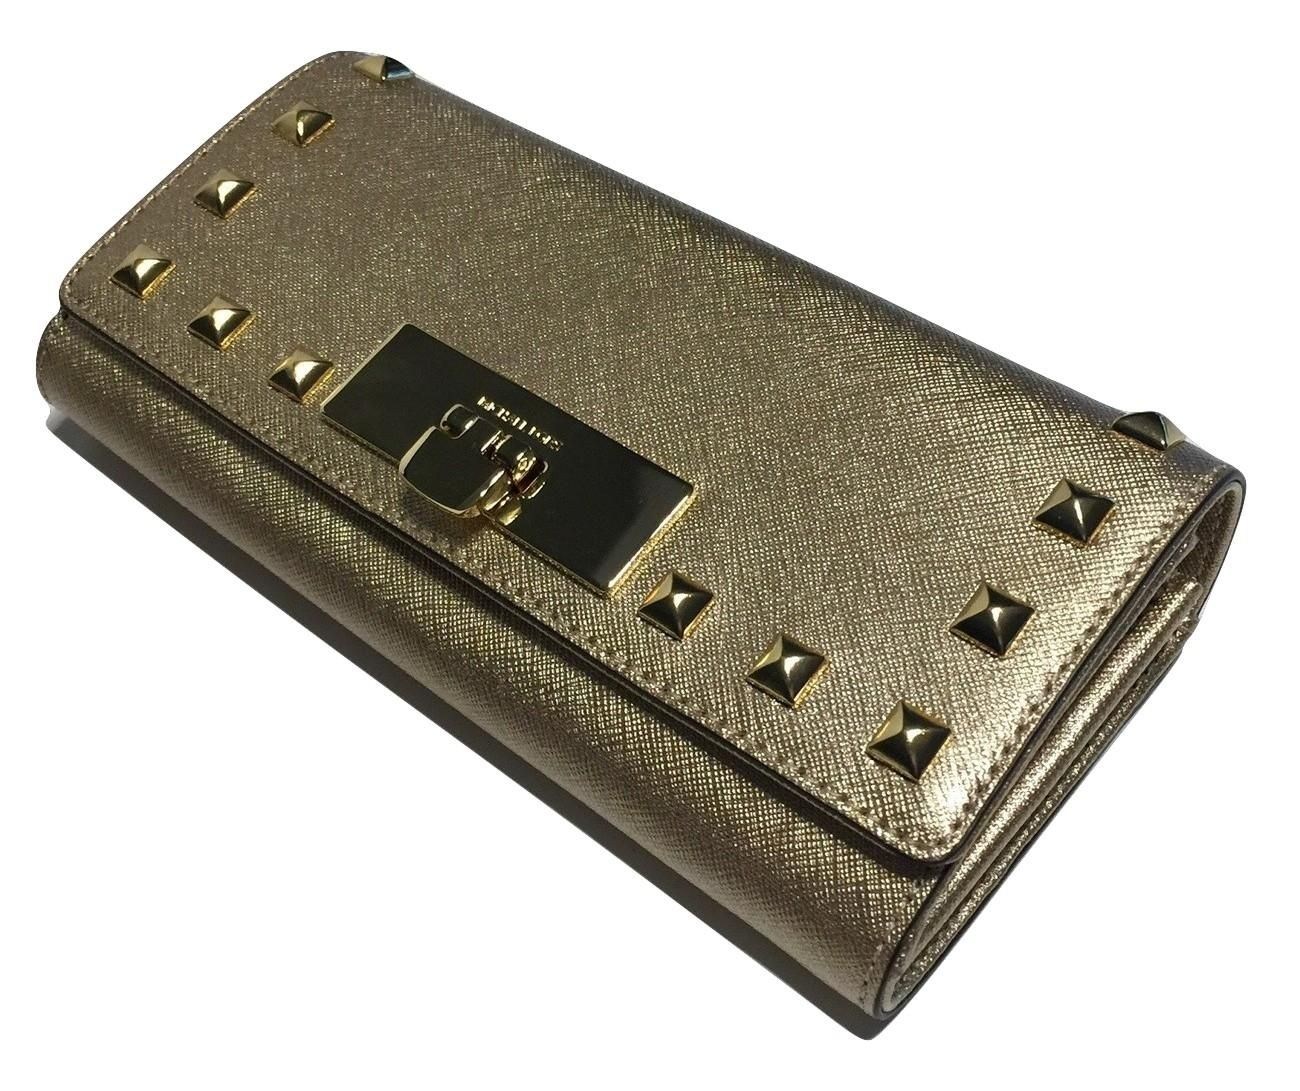 998b88627069b2 Michael Kors Callie Stud Carryall Clutch Wallet Pale Gold Saffiano. Free  shipping and guaranteed authenticity on Michael Kors Callie Stud Carryall  Clutch ...